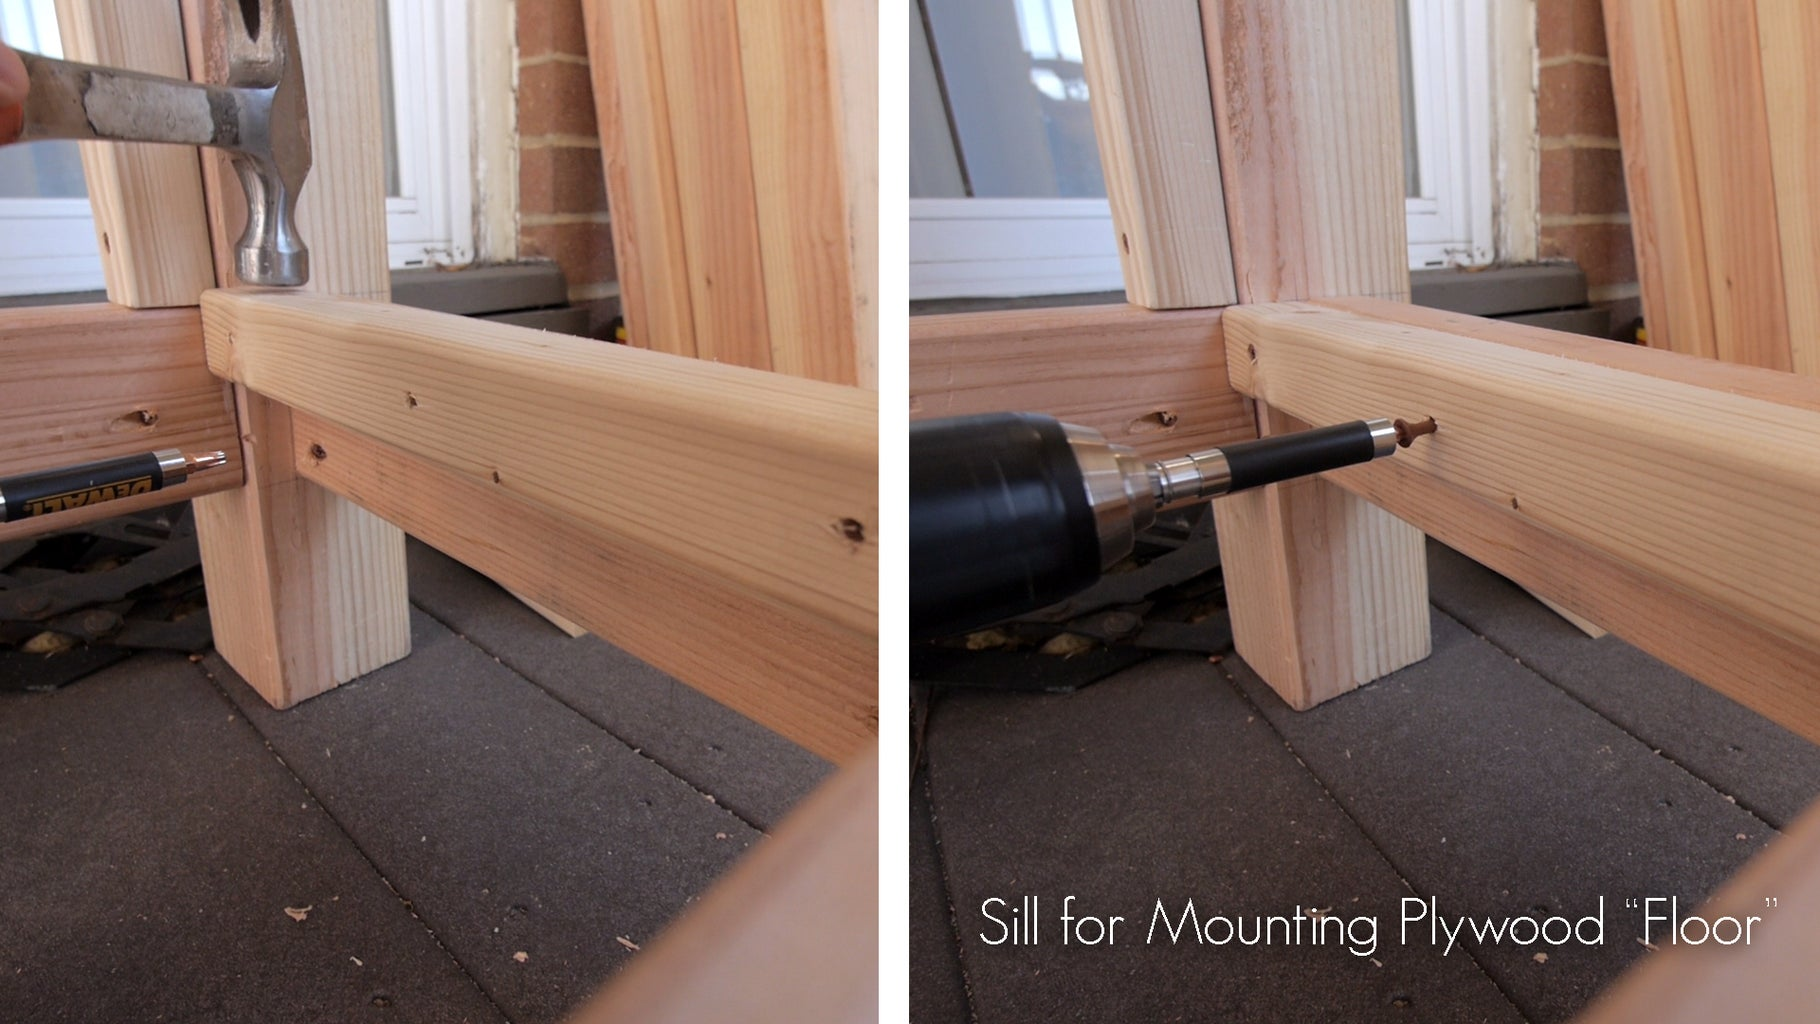 Sills for the Ends of the Plywood Floor